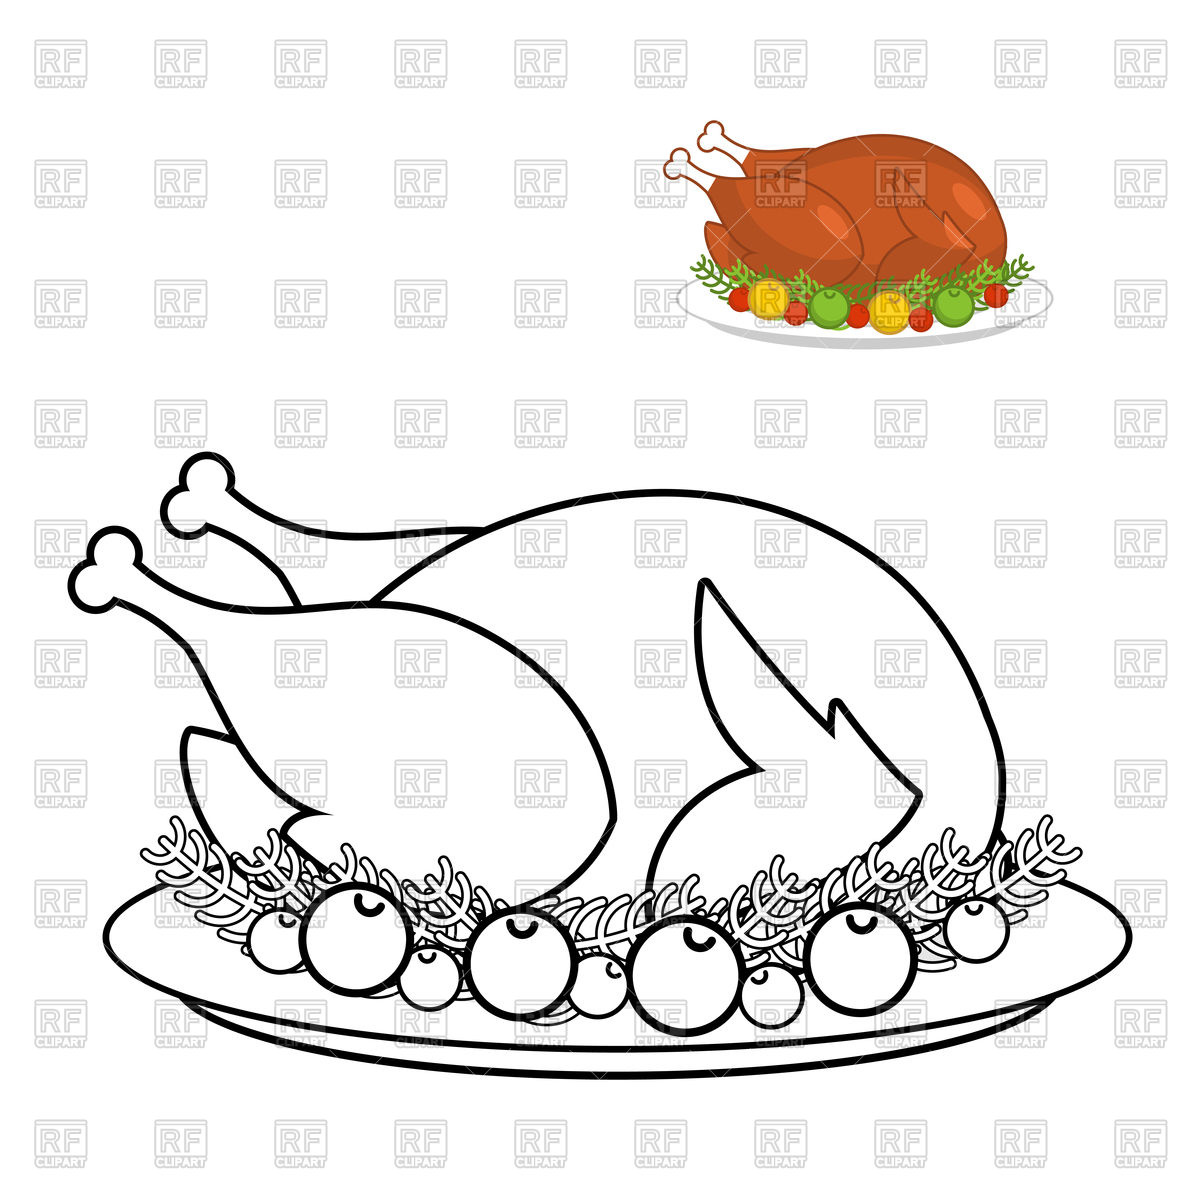 1200x1200 Page Of Colouring Book With Roast Turkey Outline Royalty Free